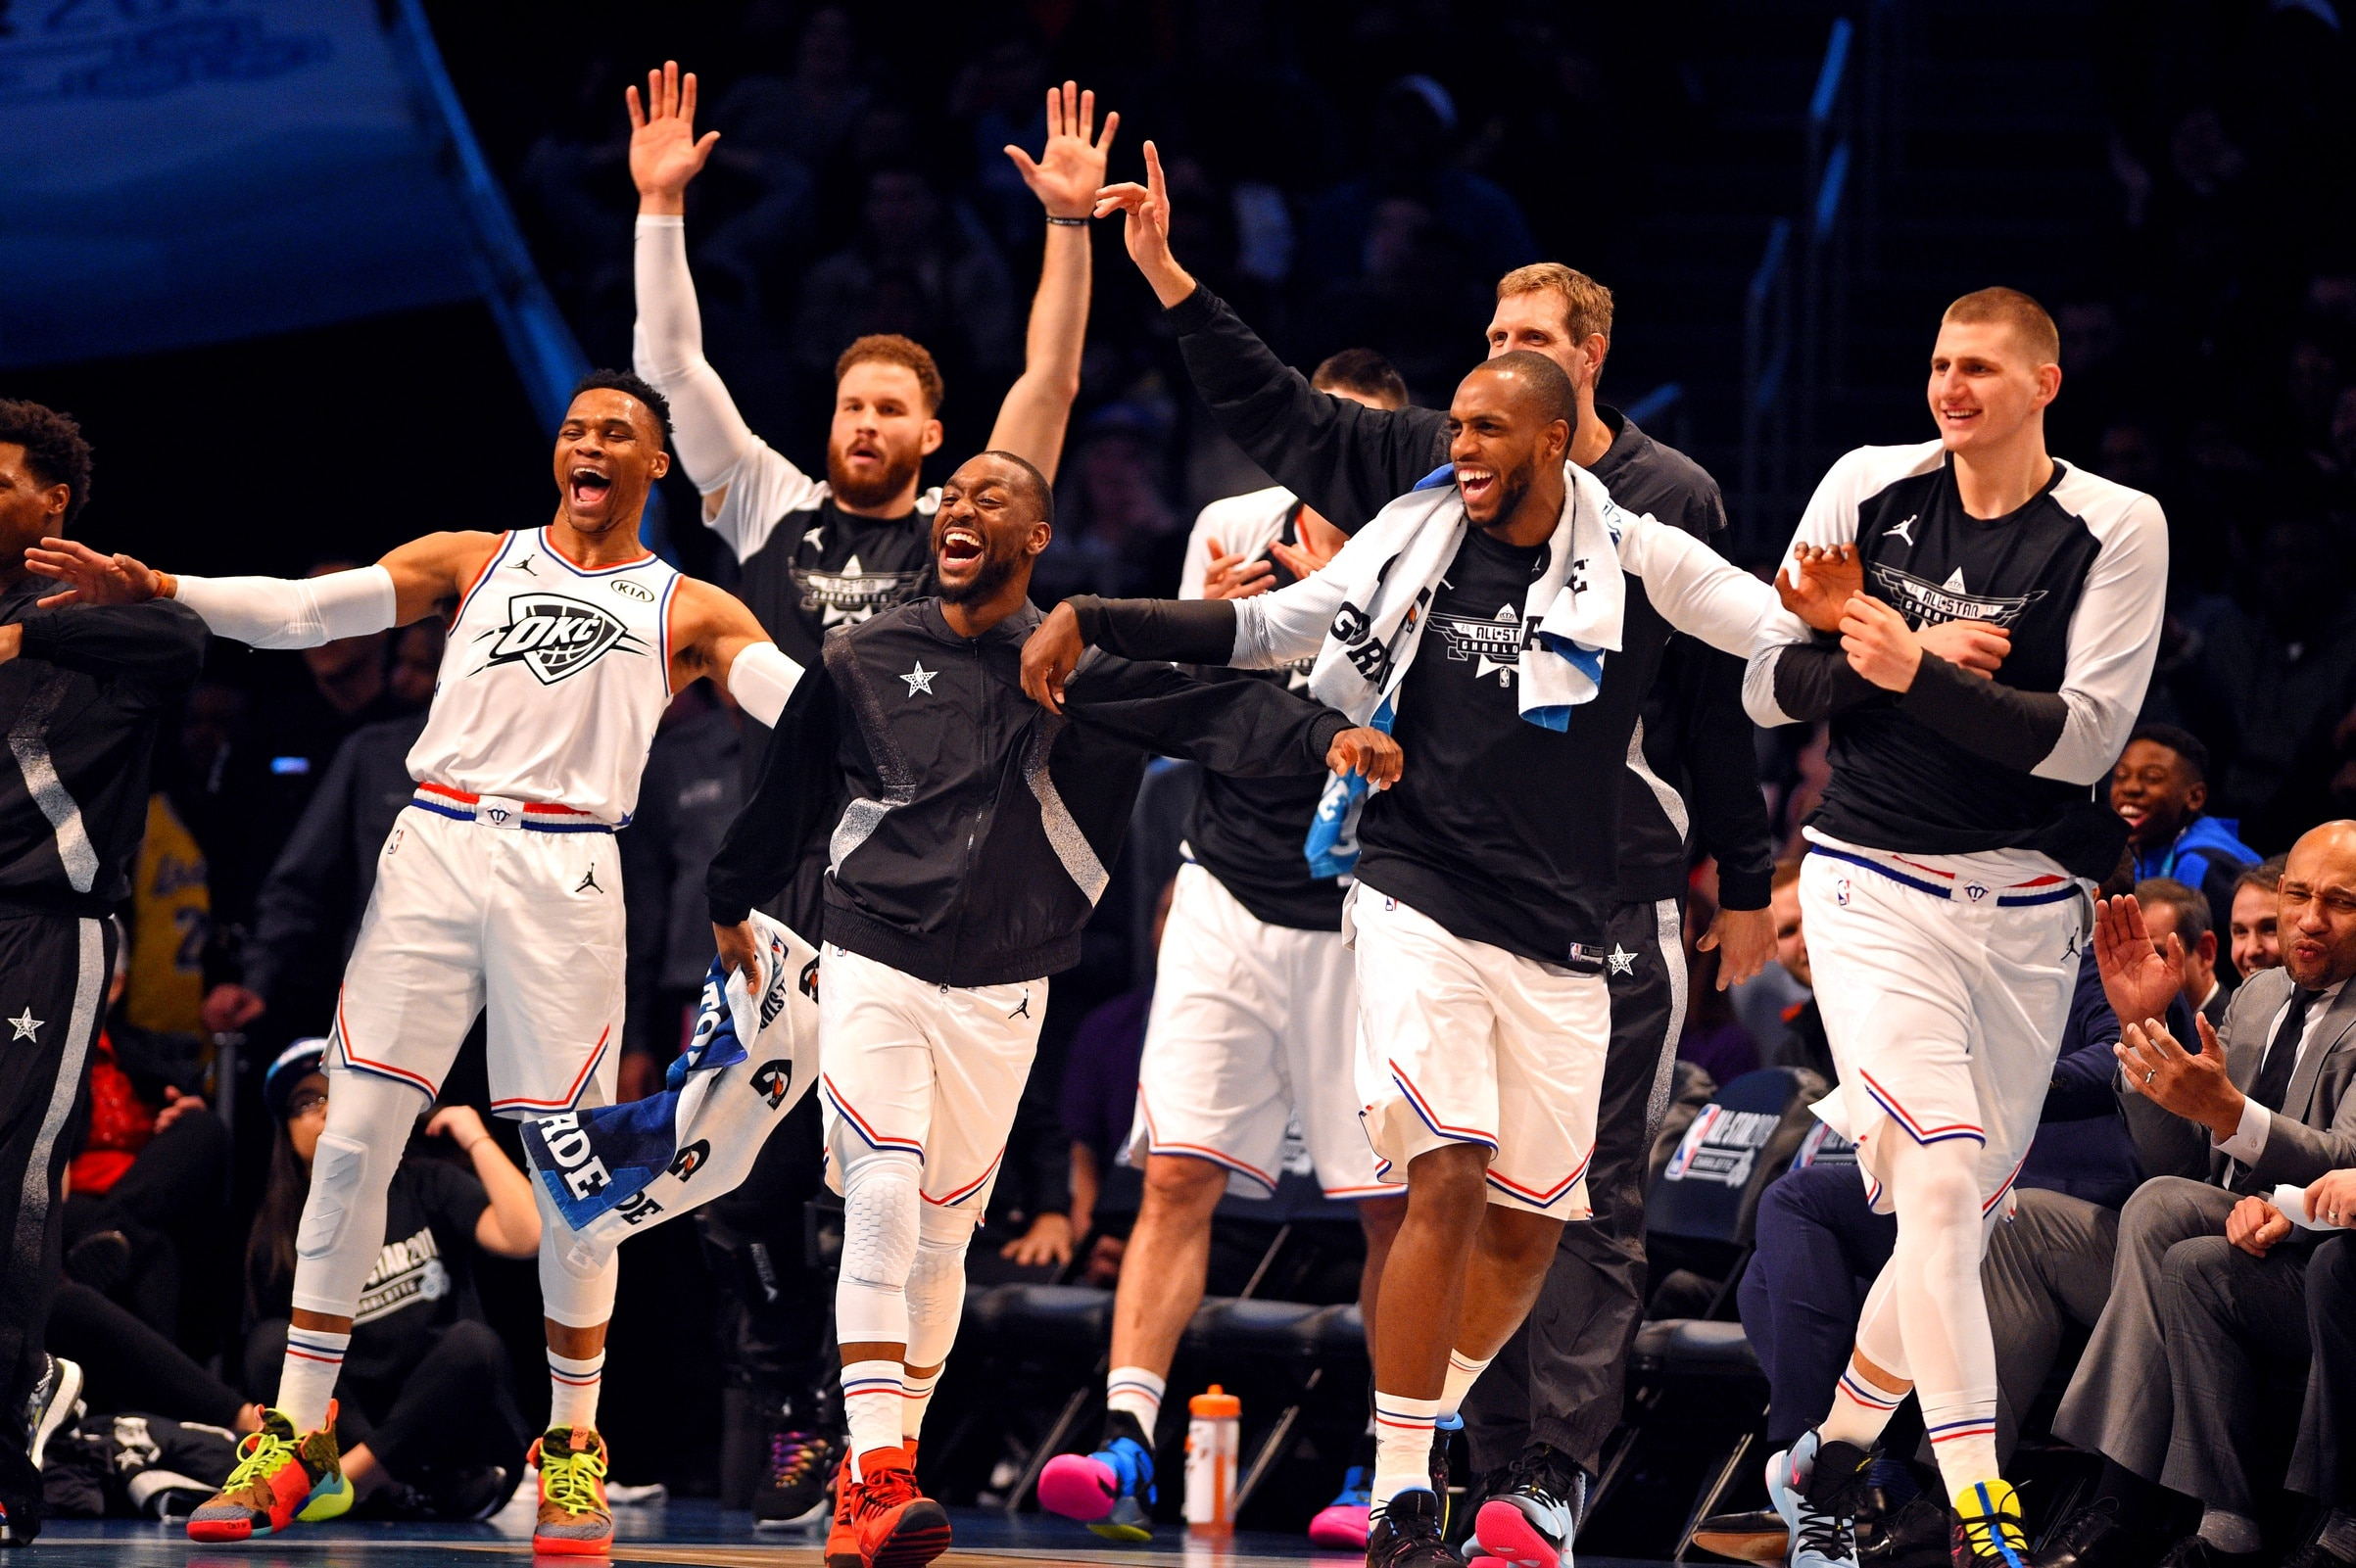 How to watch 2019 NBA All-Star Game live on TV, online